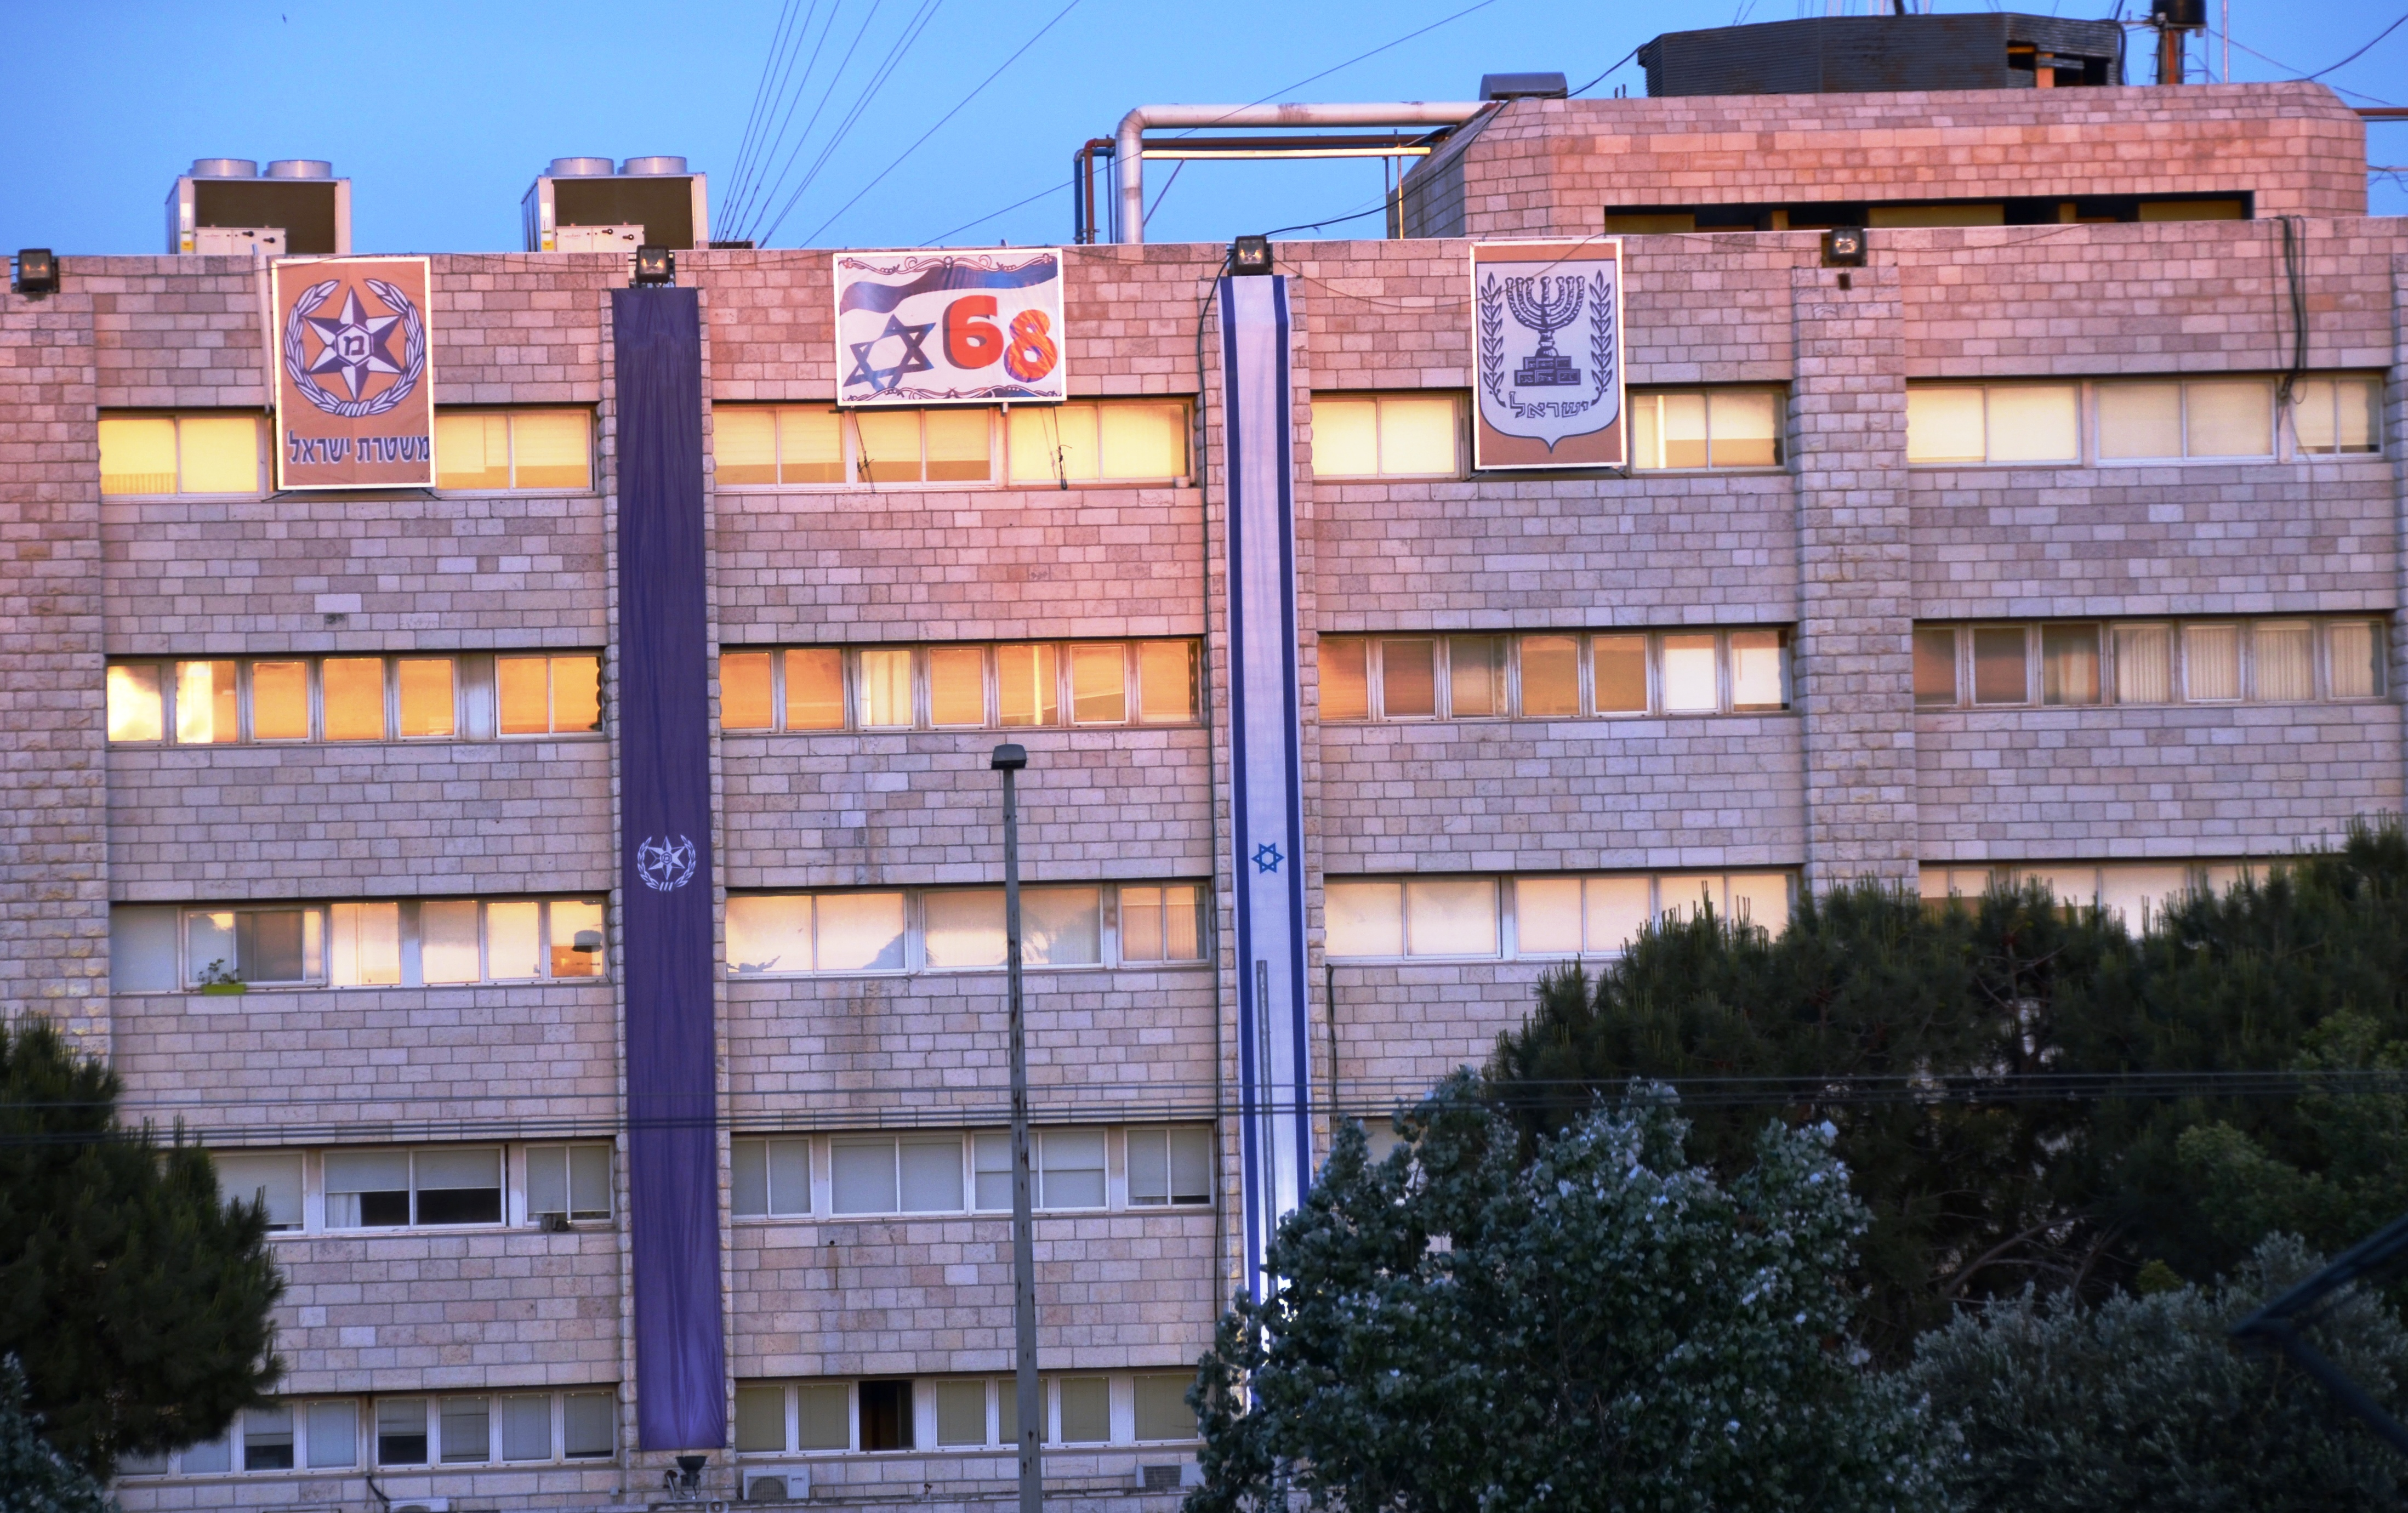 Israeli flags draped down side of police station